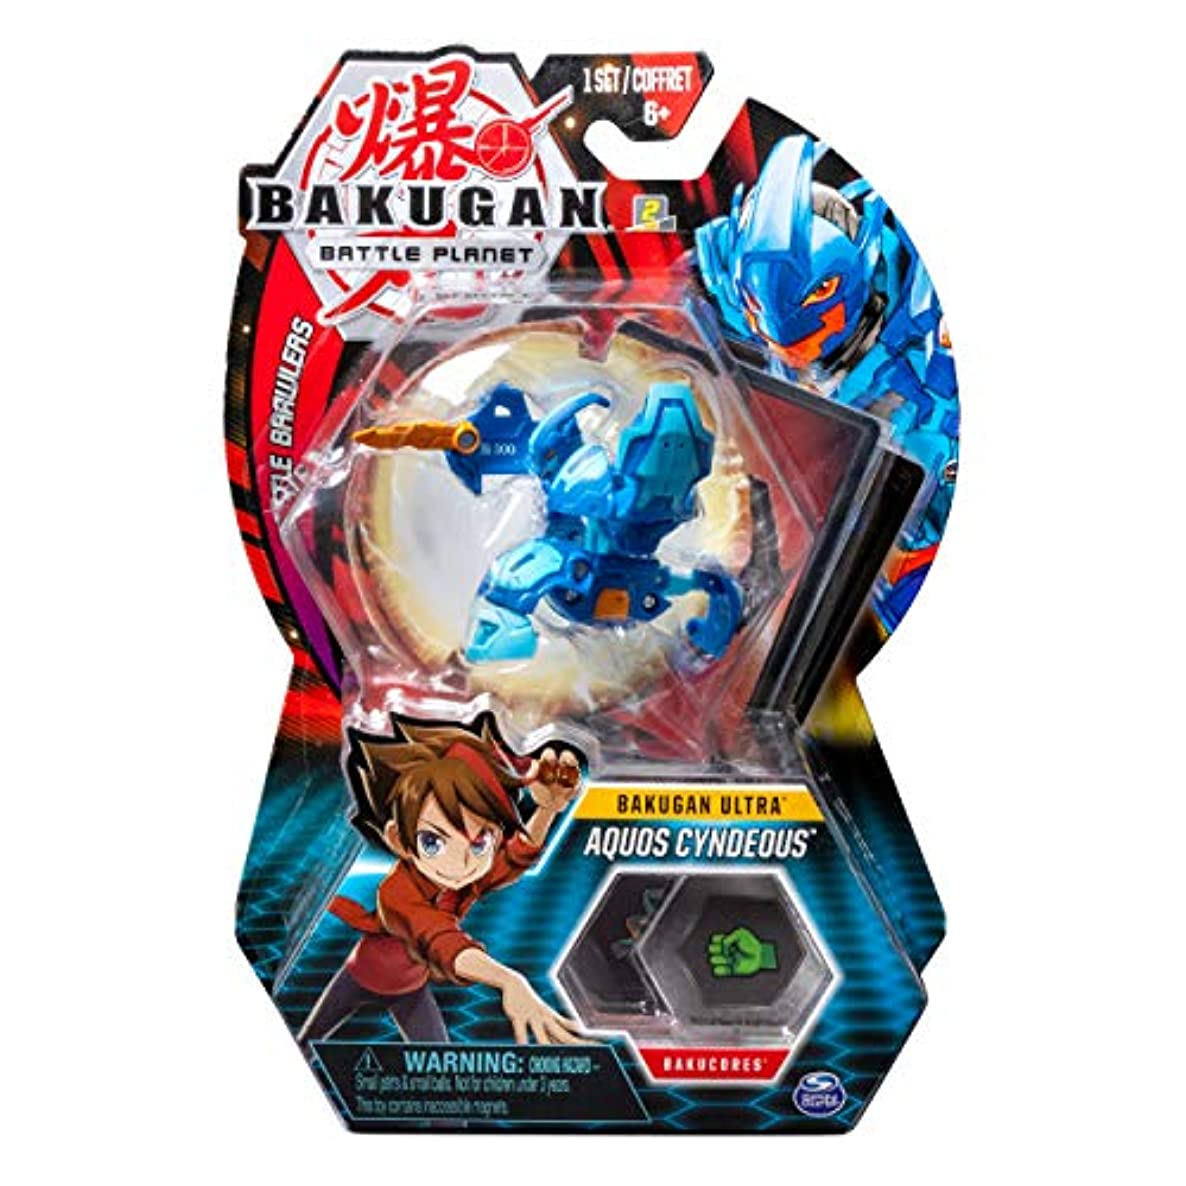 Bakugan Ultra, Aquos Cyndeous, 3-inch Tall Collectible Transforming Creature, for Ages 6 and Up